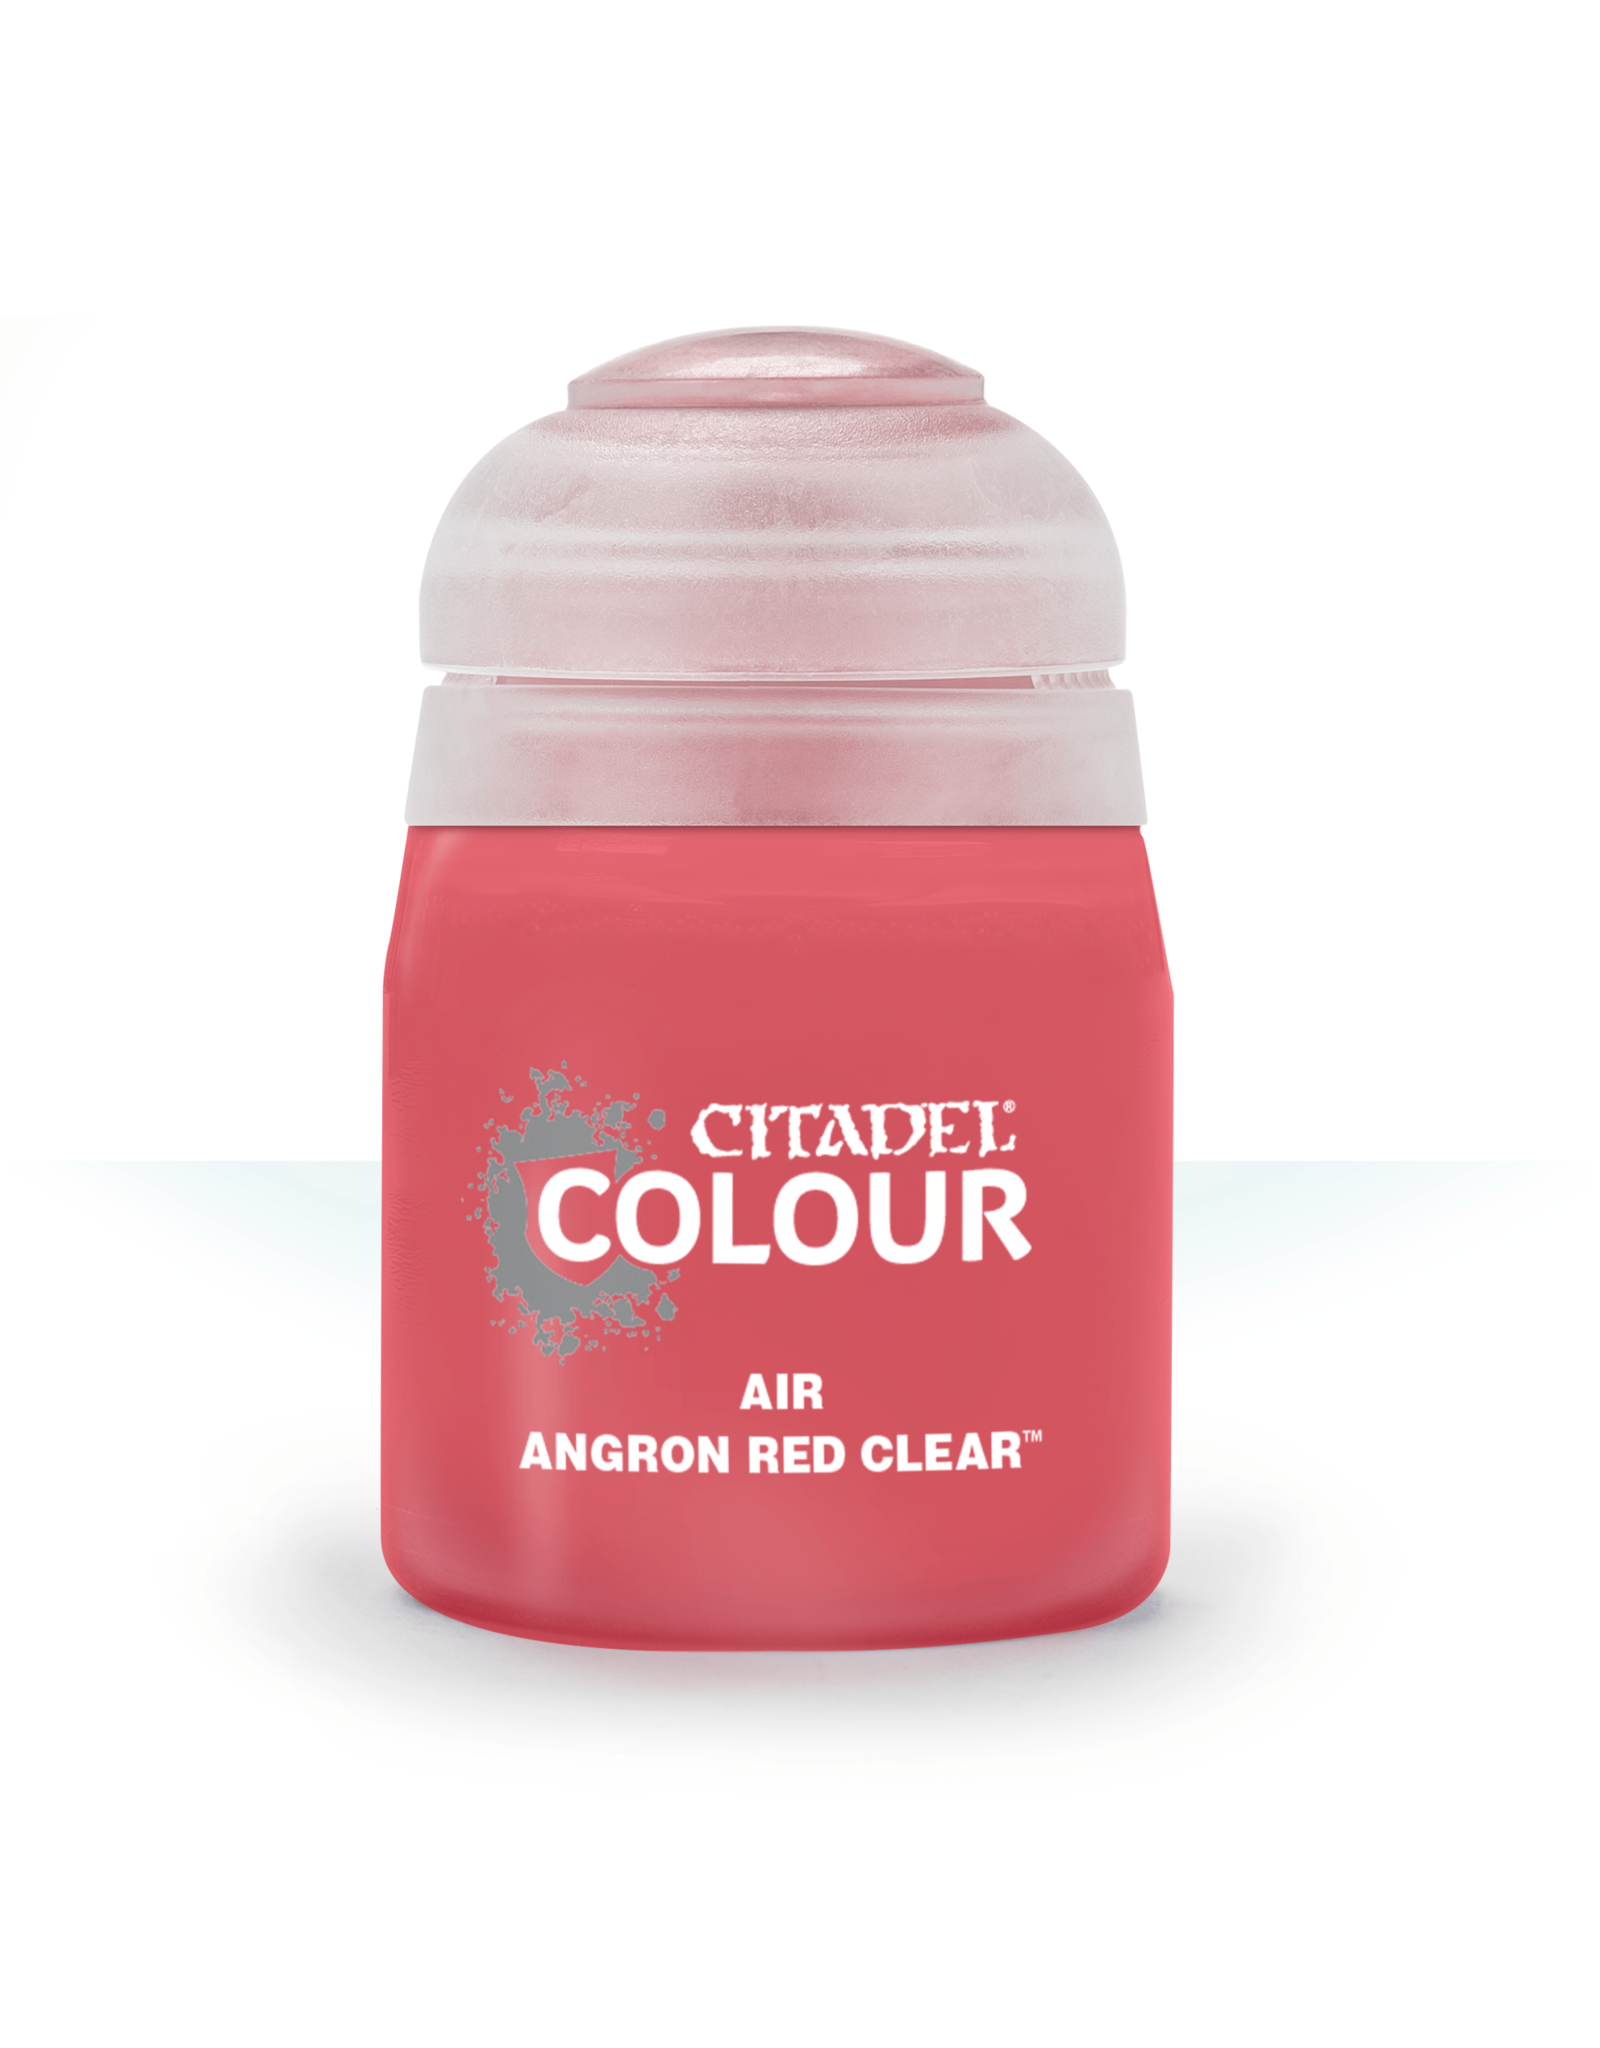 Citadel Citadel Paints Air Paint Angron Red Clear